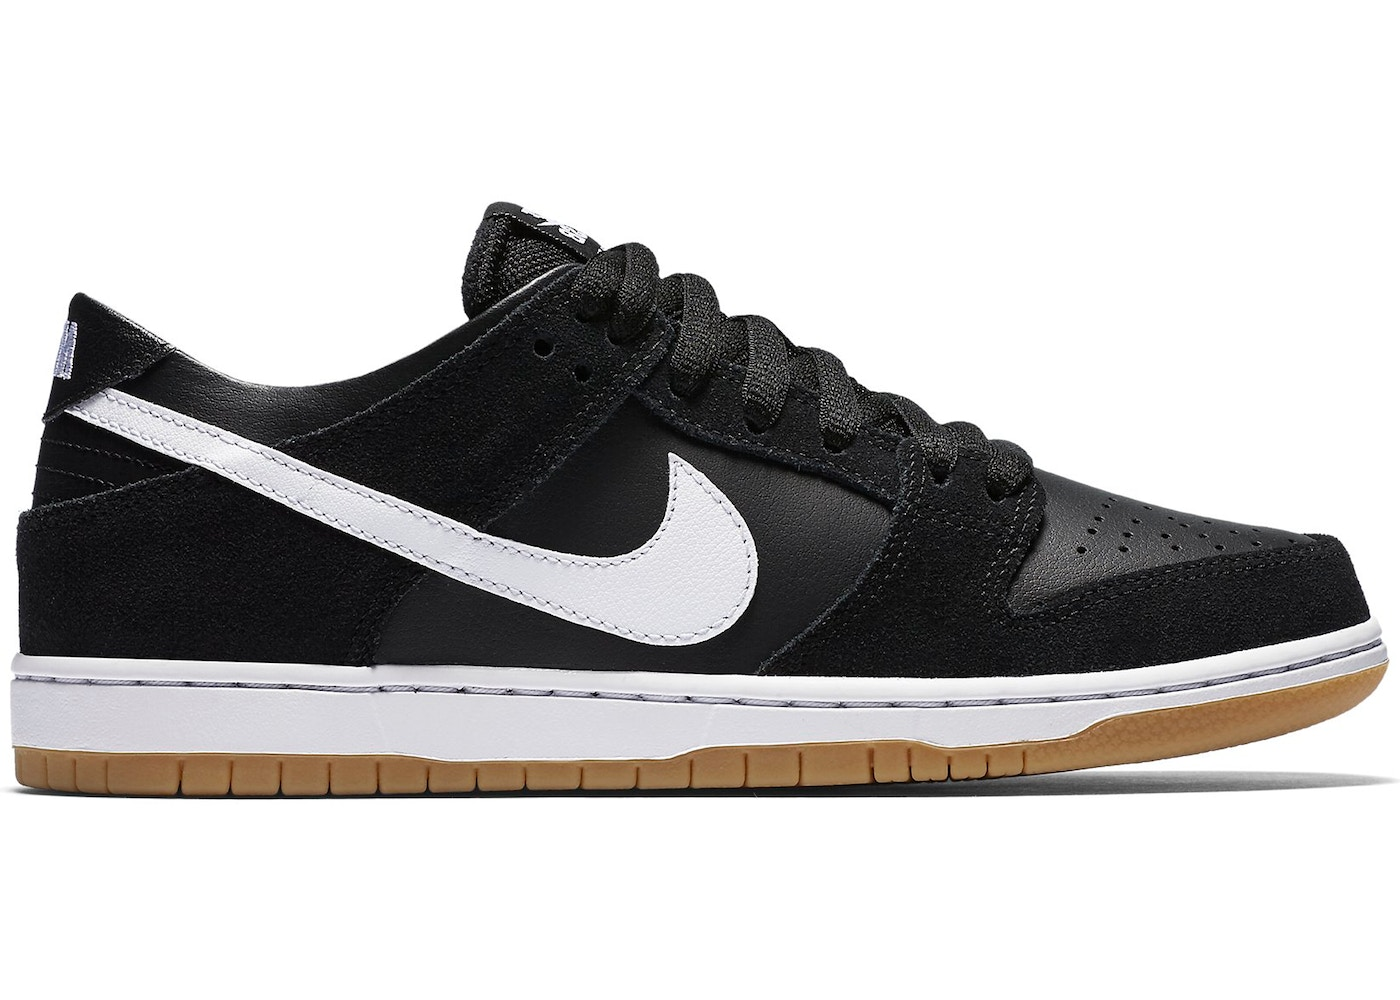 official photos 25212 7ffc7 SB Dunk Low Black White Gum